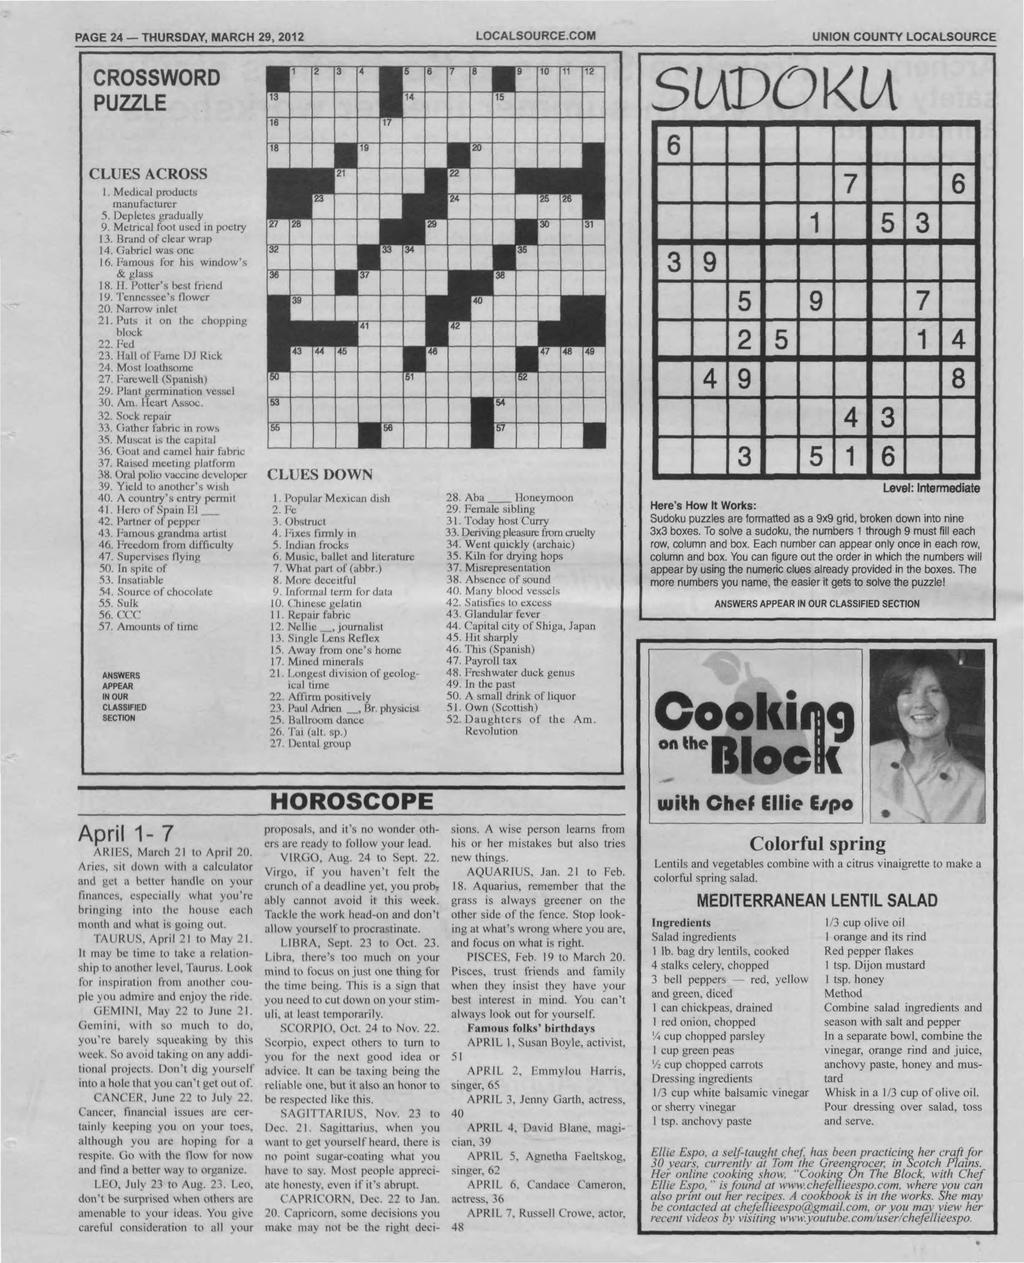 PAGE 24 THURSDAY, MARCH 29, 2012 LOCALSOURCE.COM COUNTY LOCALSOURCE CROSSWORD SUDOKU 1 I 3 4!> b 10 11 VI I 14 PUZZLE r16 117 CLUES ACROSS I. Medical products manufacturer 5. Depletes gradually 9.